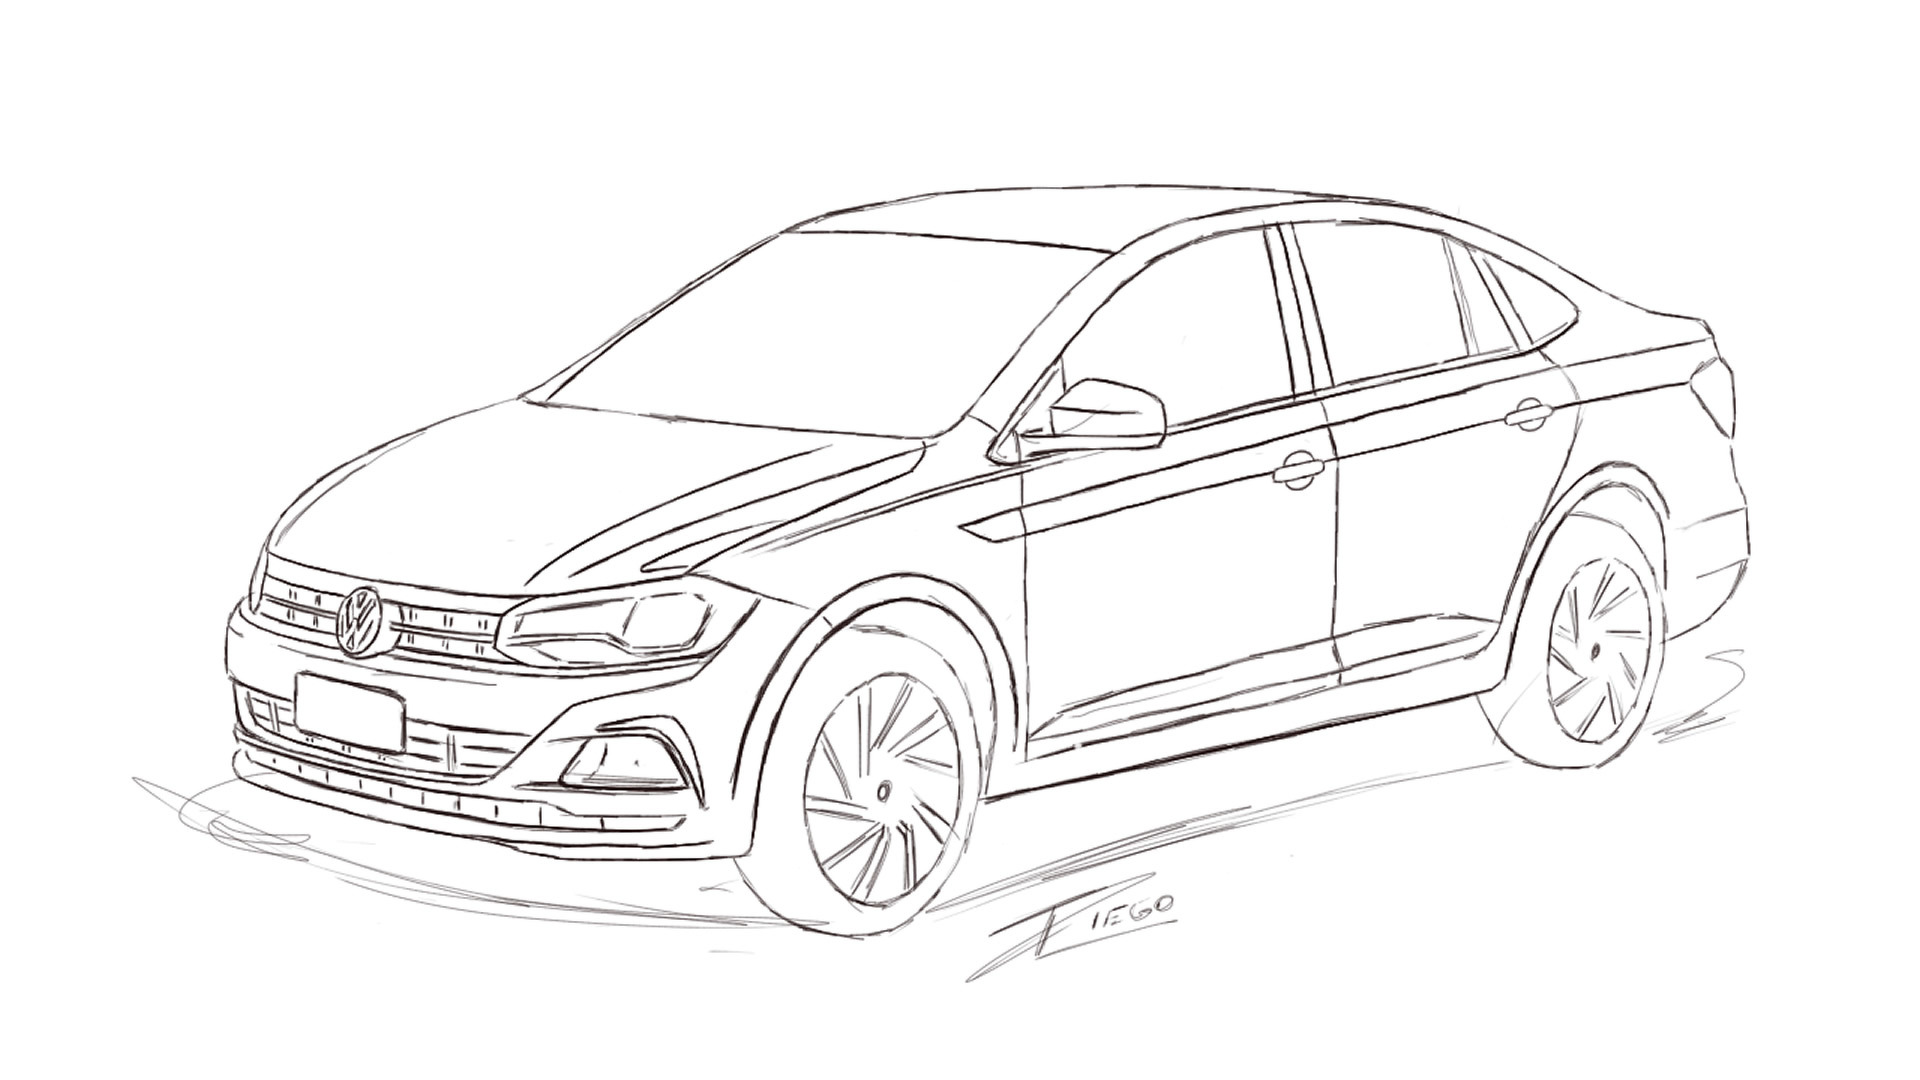 Volkswagen S Upcoming Polo Sedan Could Look Like This